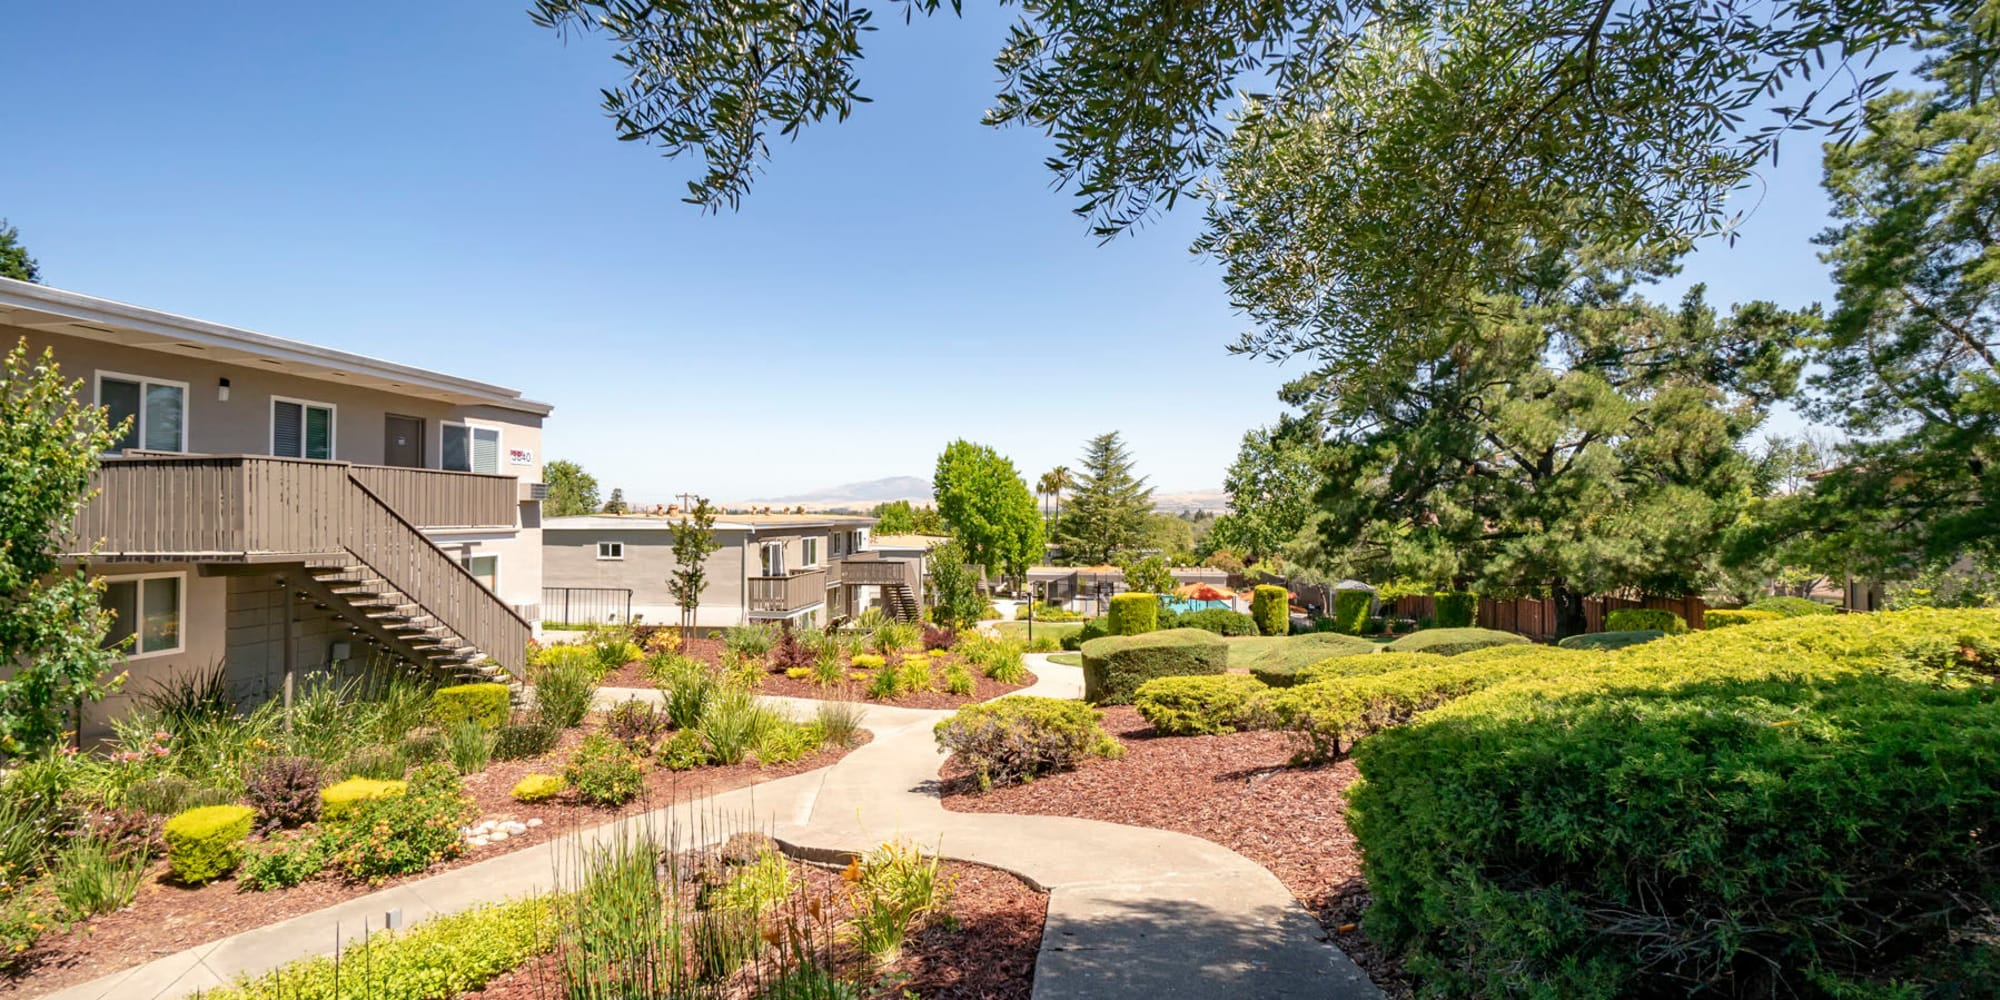 Pathways through the community surrounded by professionally managed landscaping at Pleasanton Heights in Pleasanton, California